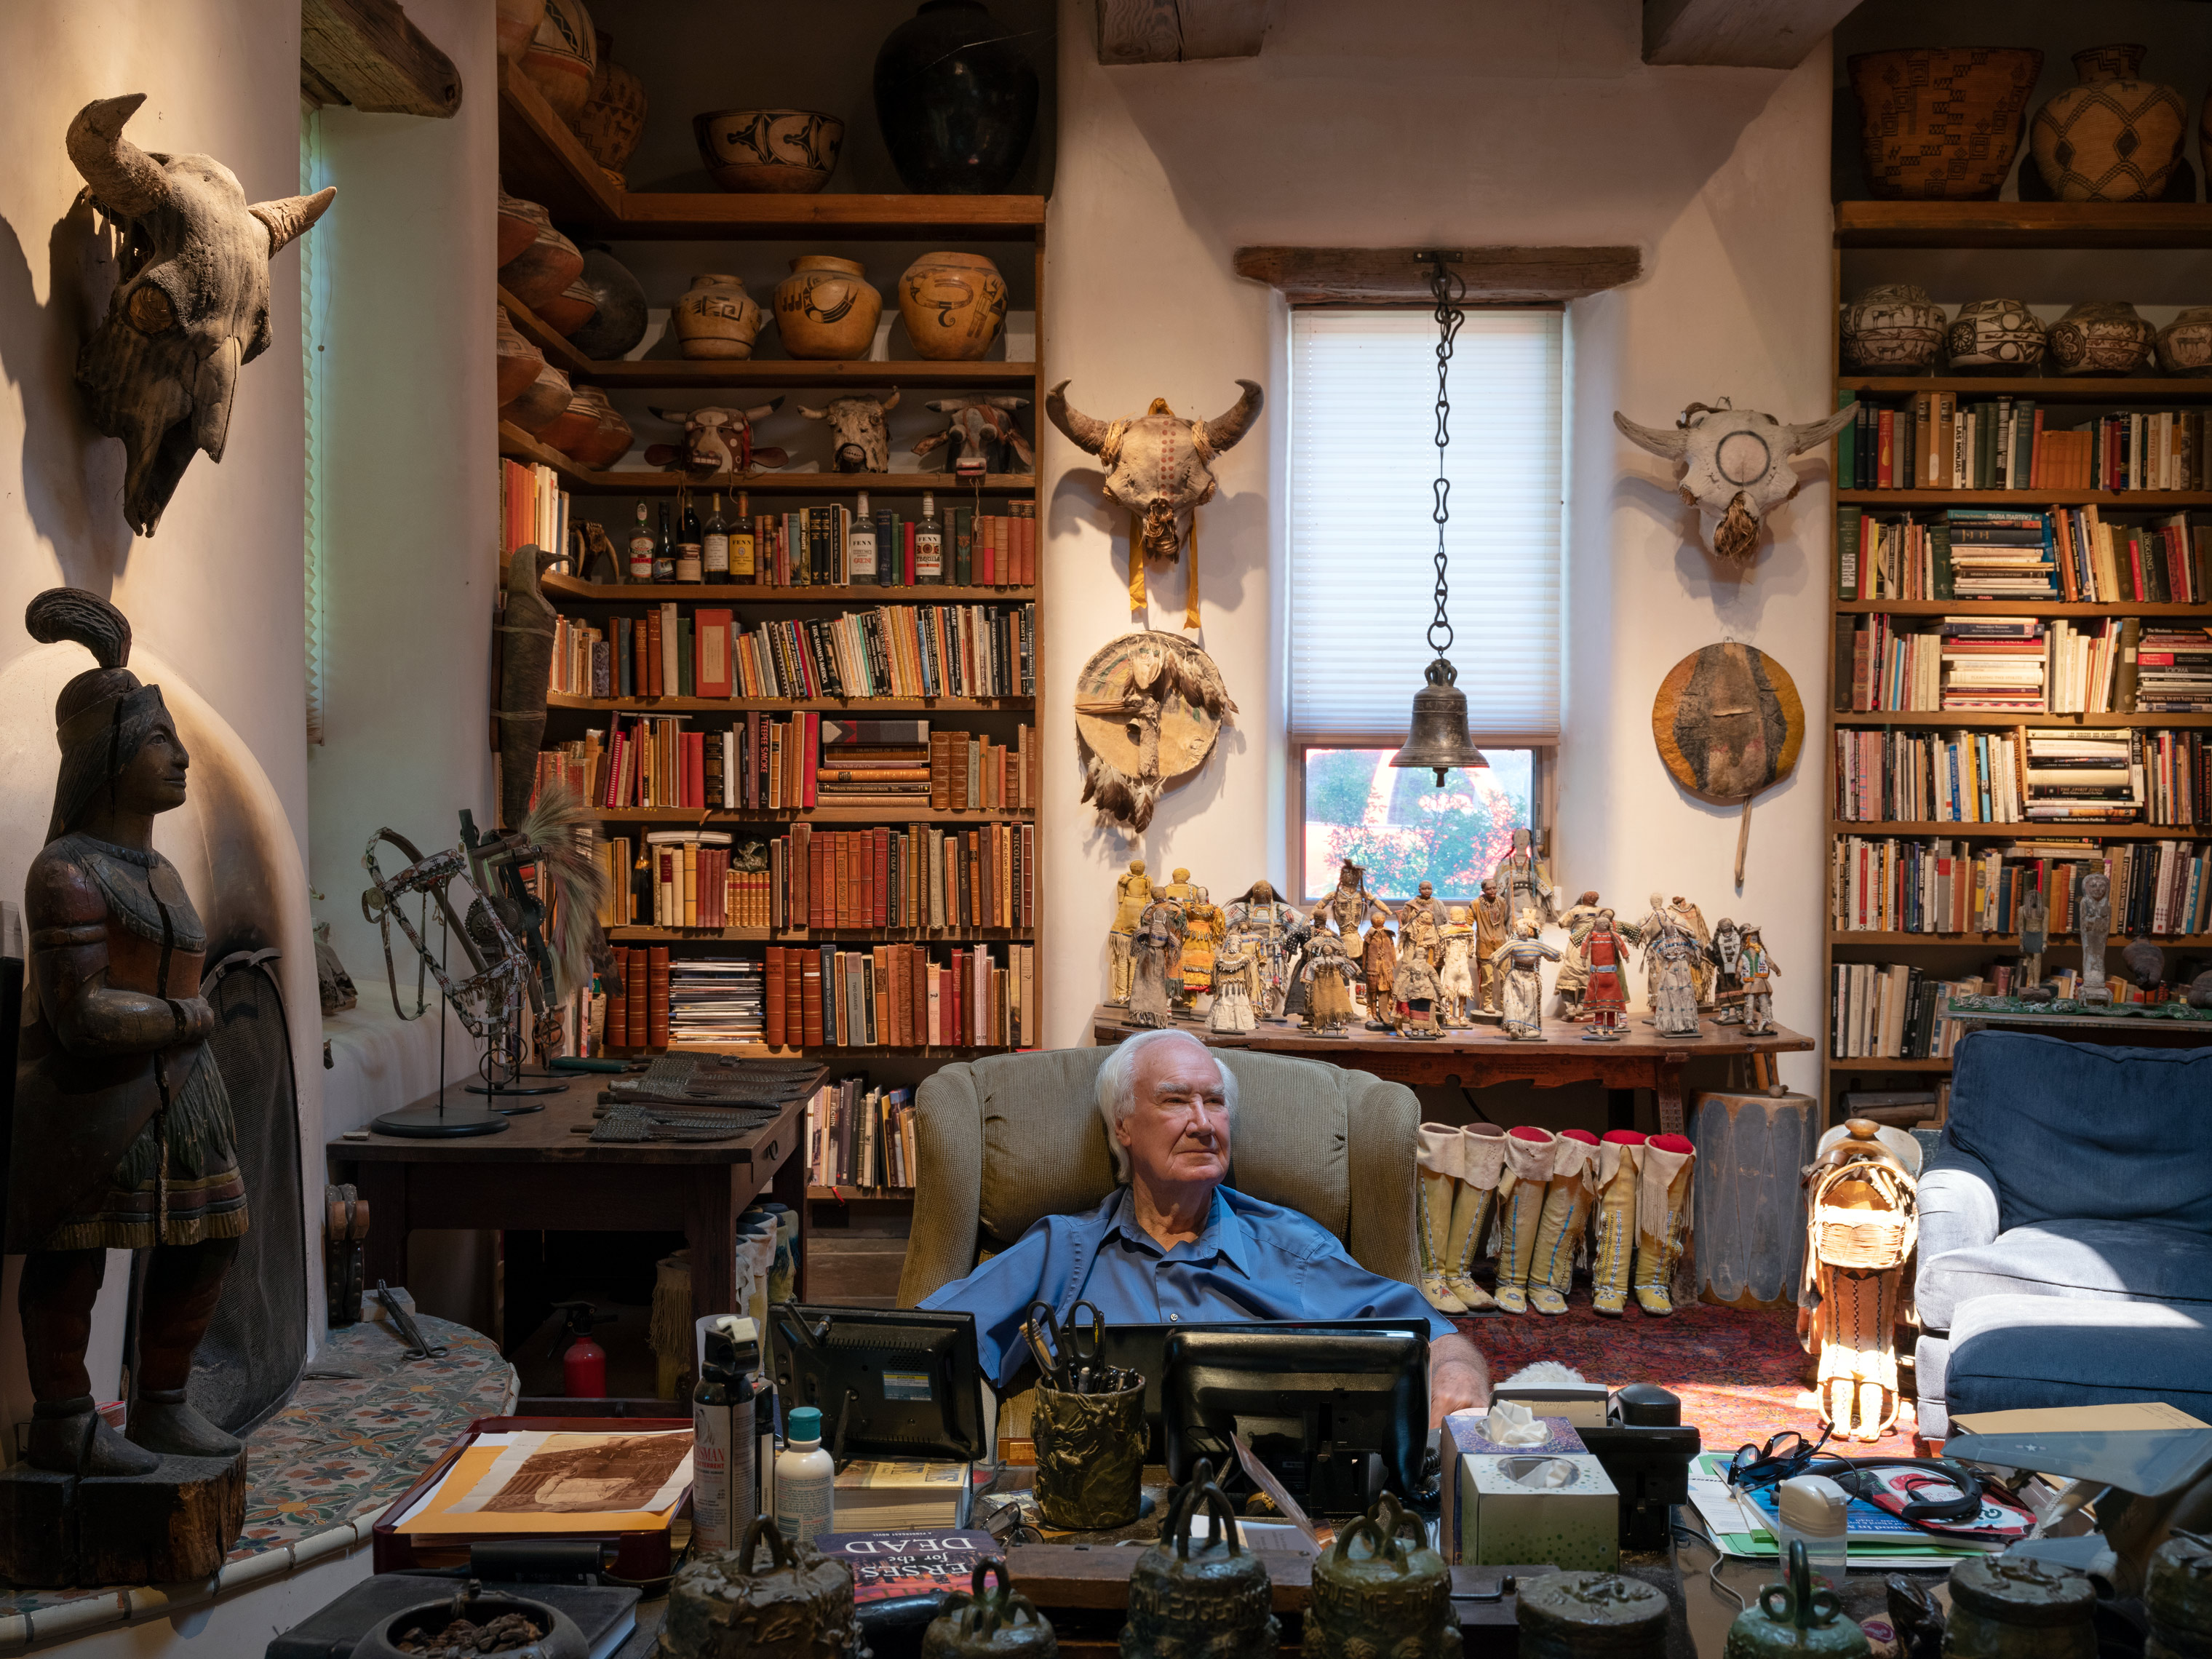 Forrest Fenn in his library, Santa Fe, NM, May 27, 2019.